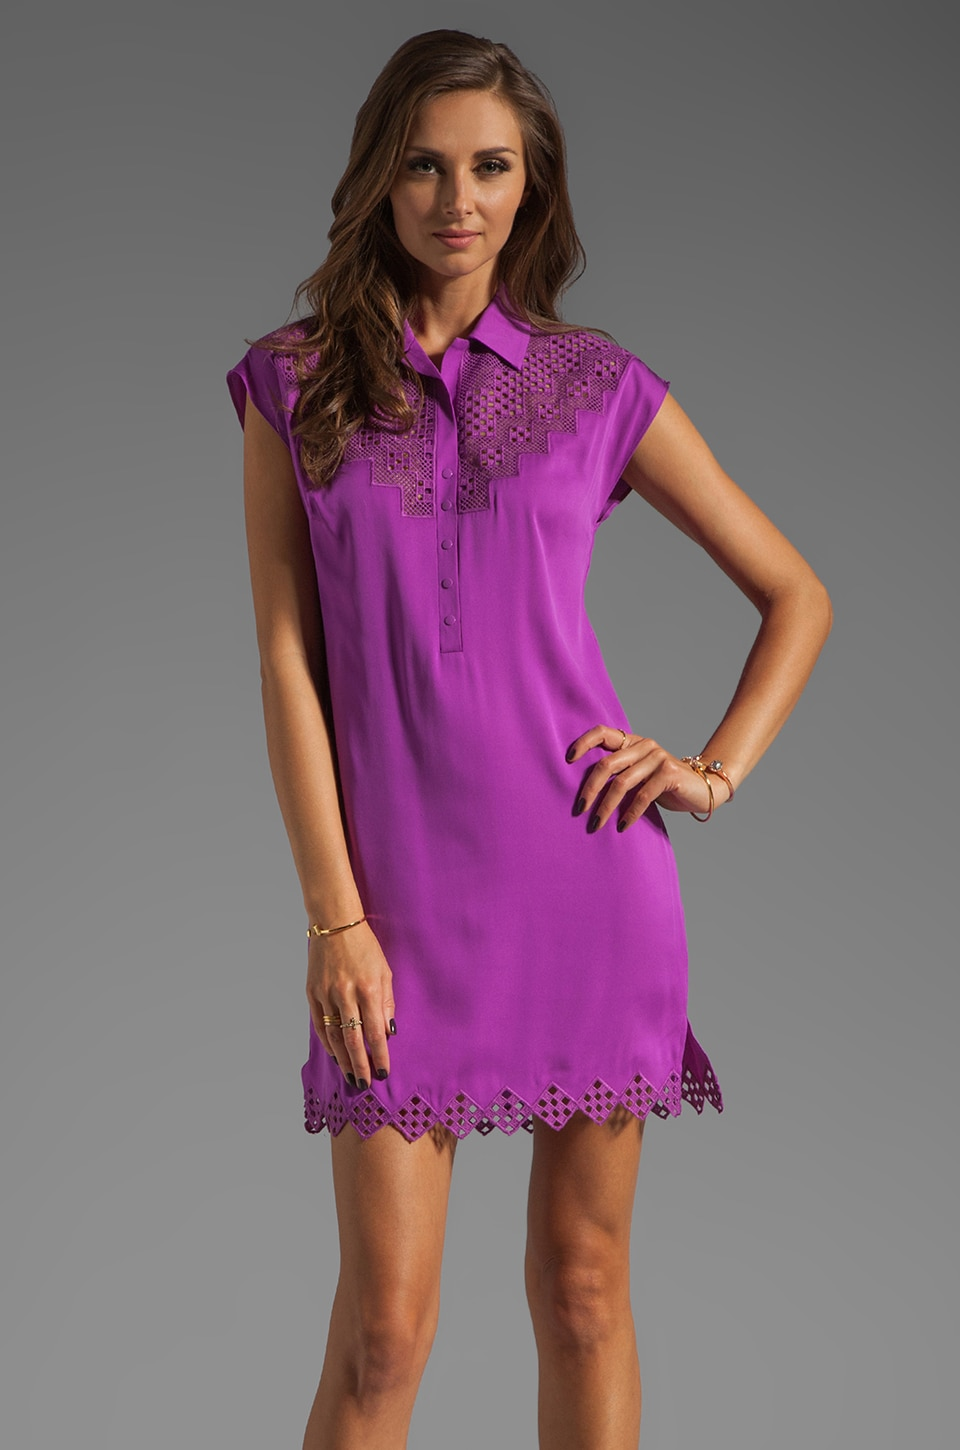 Catherine Malandrino Collared Shirt Dress in Mulberry